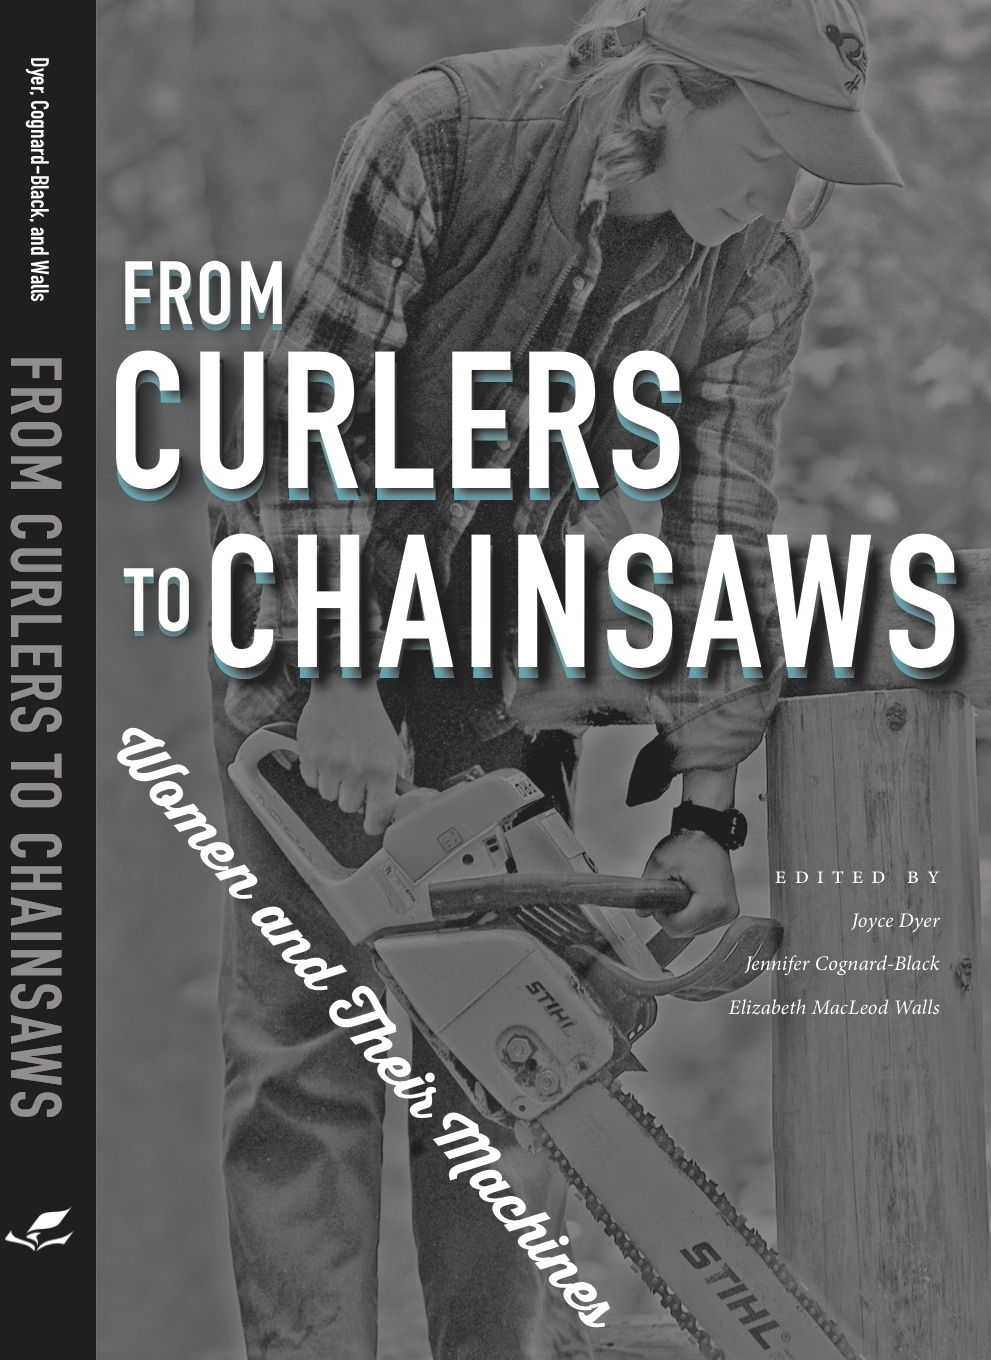 From Curlers to Chainsaws